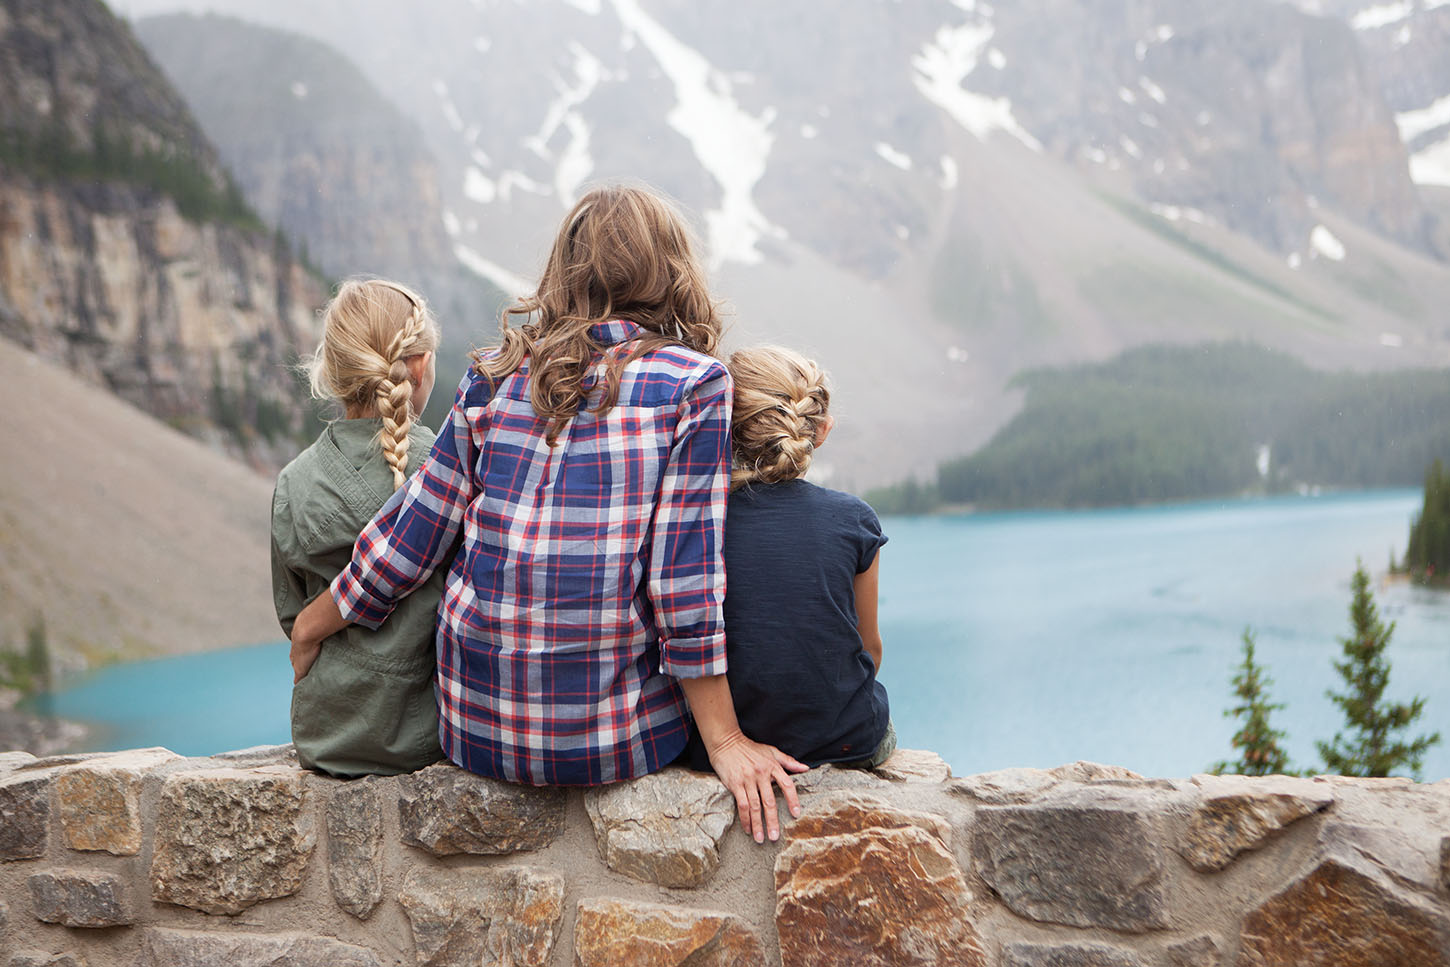 The power of spending time in nature as a family is unmistakeable – the noise of life fades away, leaving room for stillness, peace, and true connection.